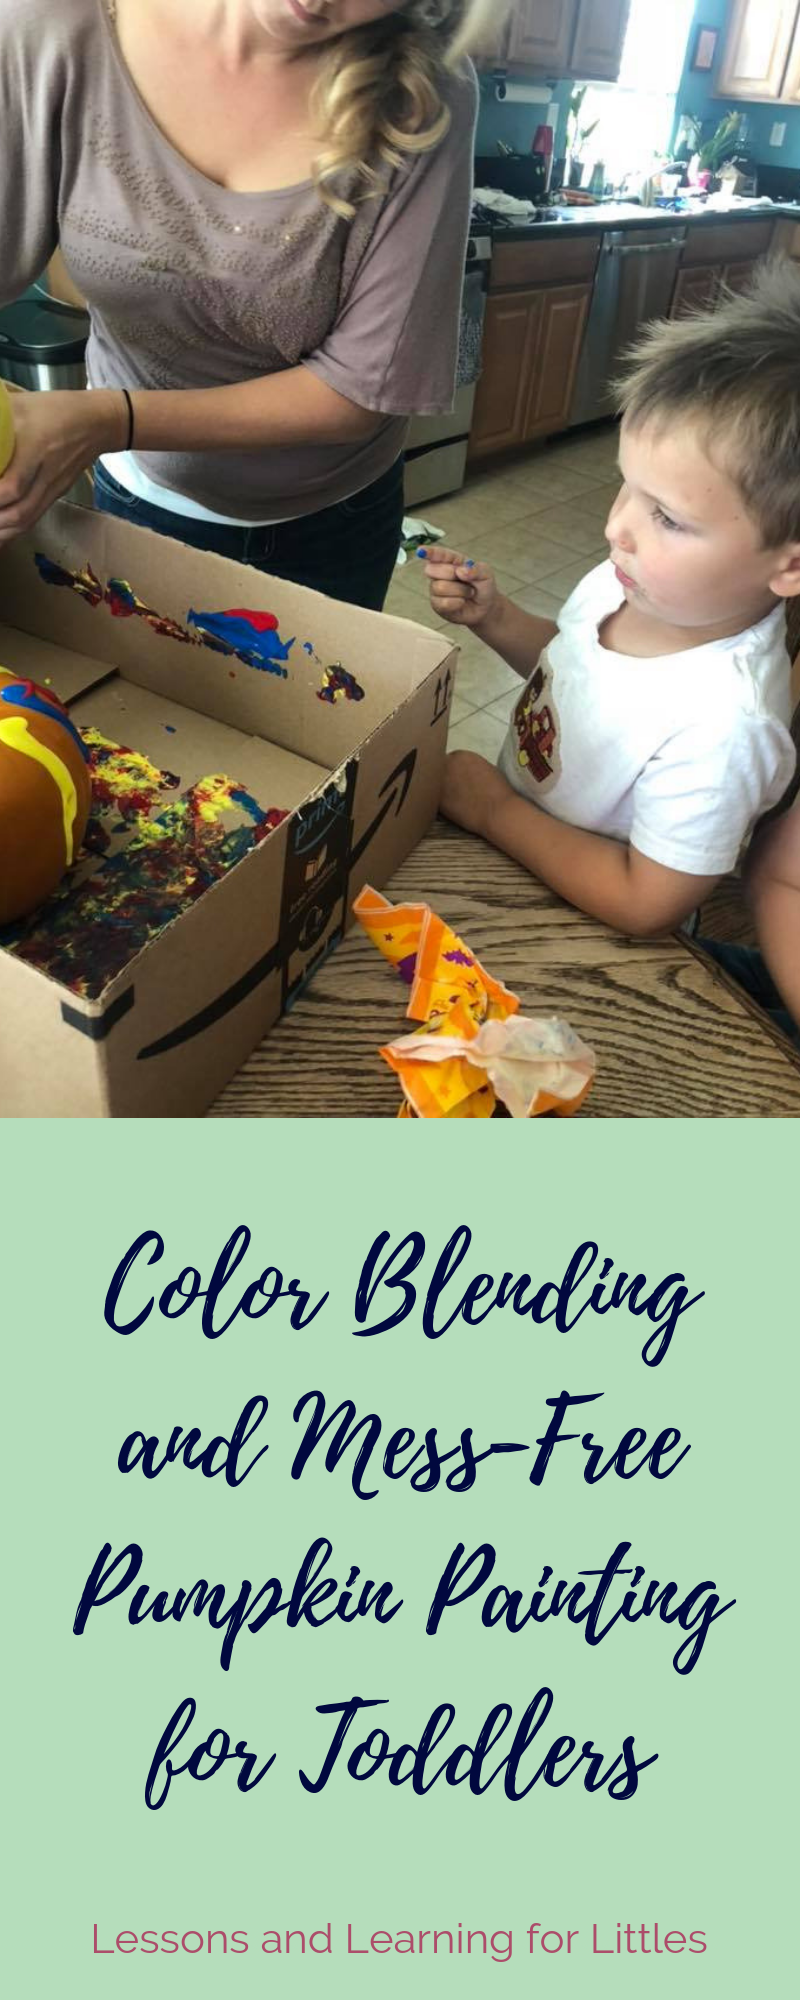 Mess-free pumpkin painting activity for toddlers. Click through to learn more about this quick and easy way to practice colors while #paintingpumpkins from Lessons and Learning for Littles.